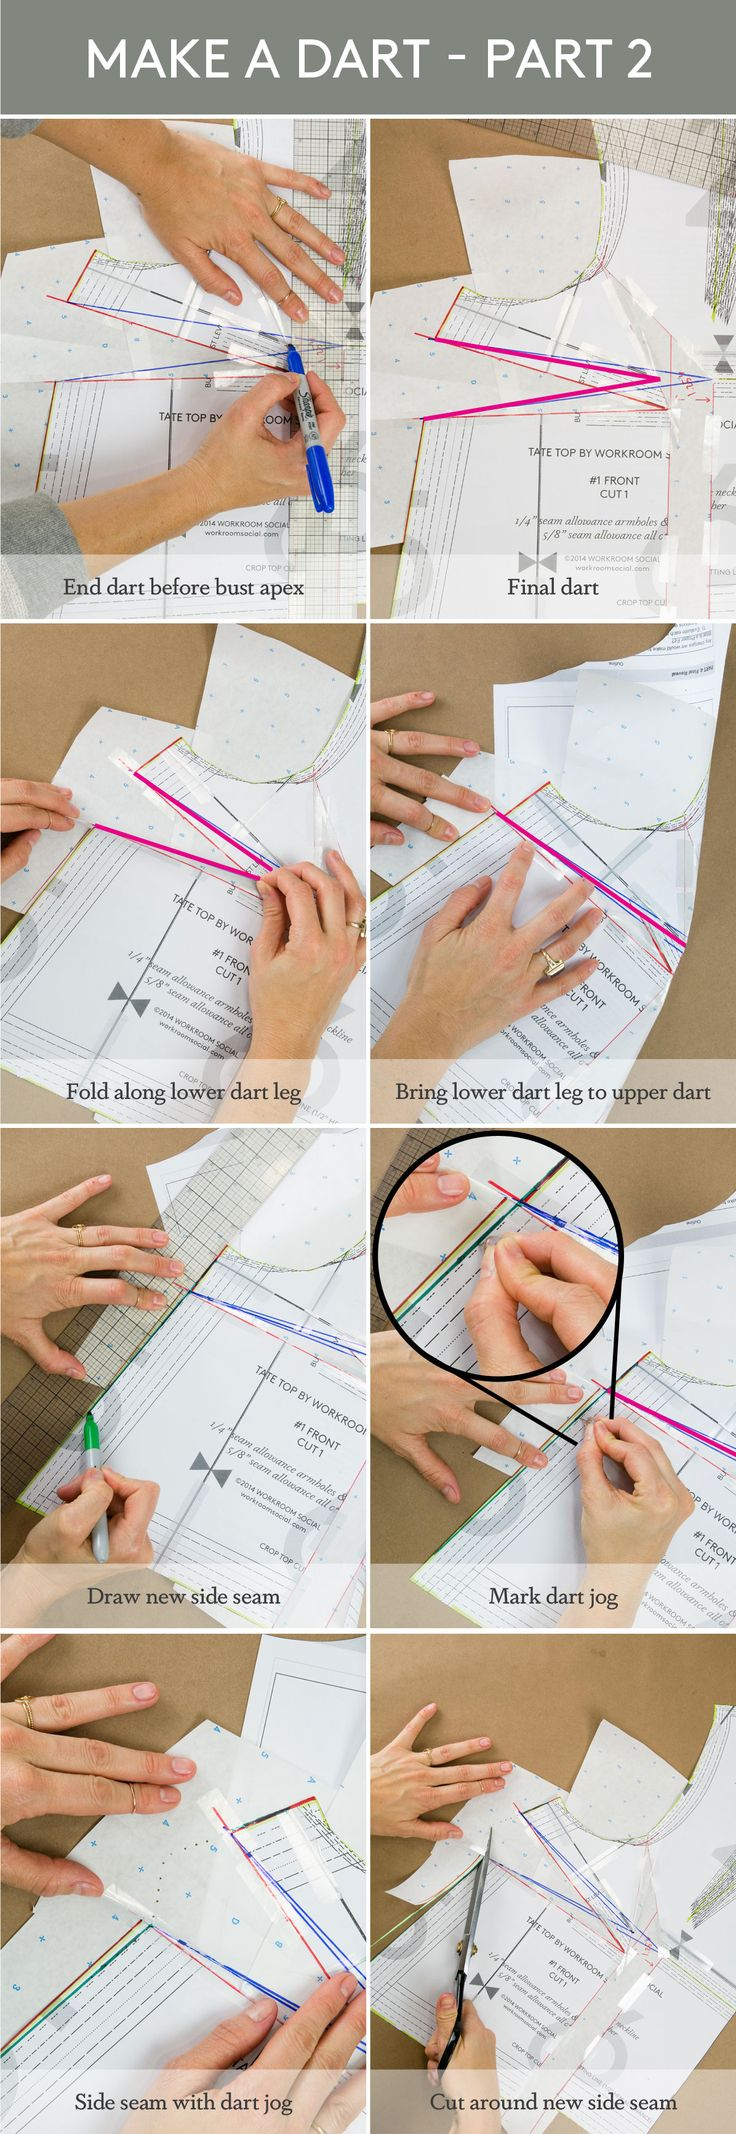 TUTORIAL: HOW TO MAKE A FULL BUST ADJUSTMENT ON A BODICE WITHOUT UNDERARM OR SIDE SEAM DARTSTUTORIAL: HOW TO MAKE A FULL BUST ADJUSTMENT ON A BODICE WITHOUT UNDERARM OR SIDE SEAM DARTS • Workroom Social - Sewing studio in Brooklyn, NY